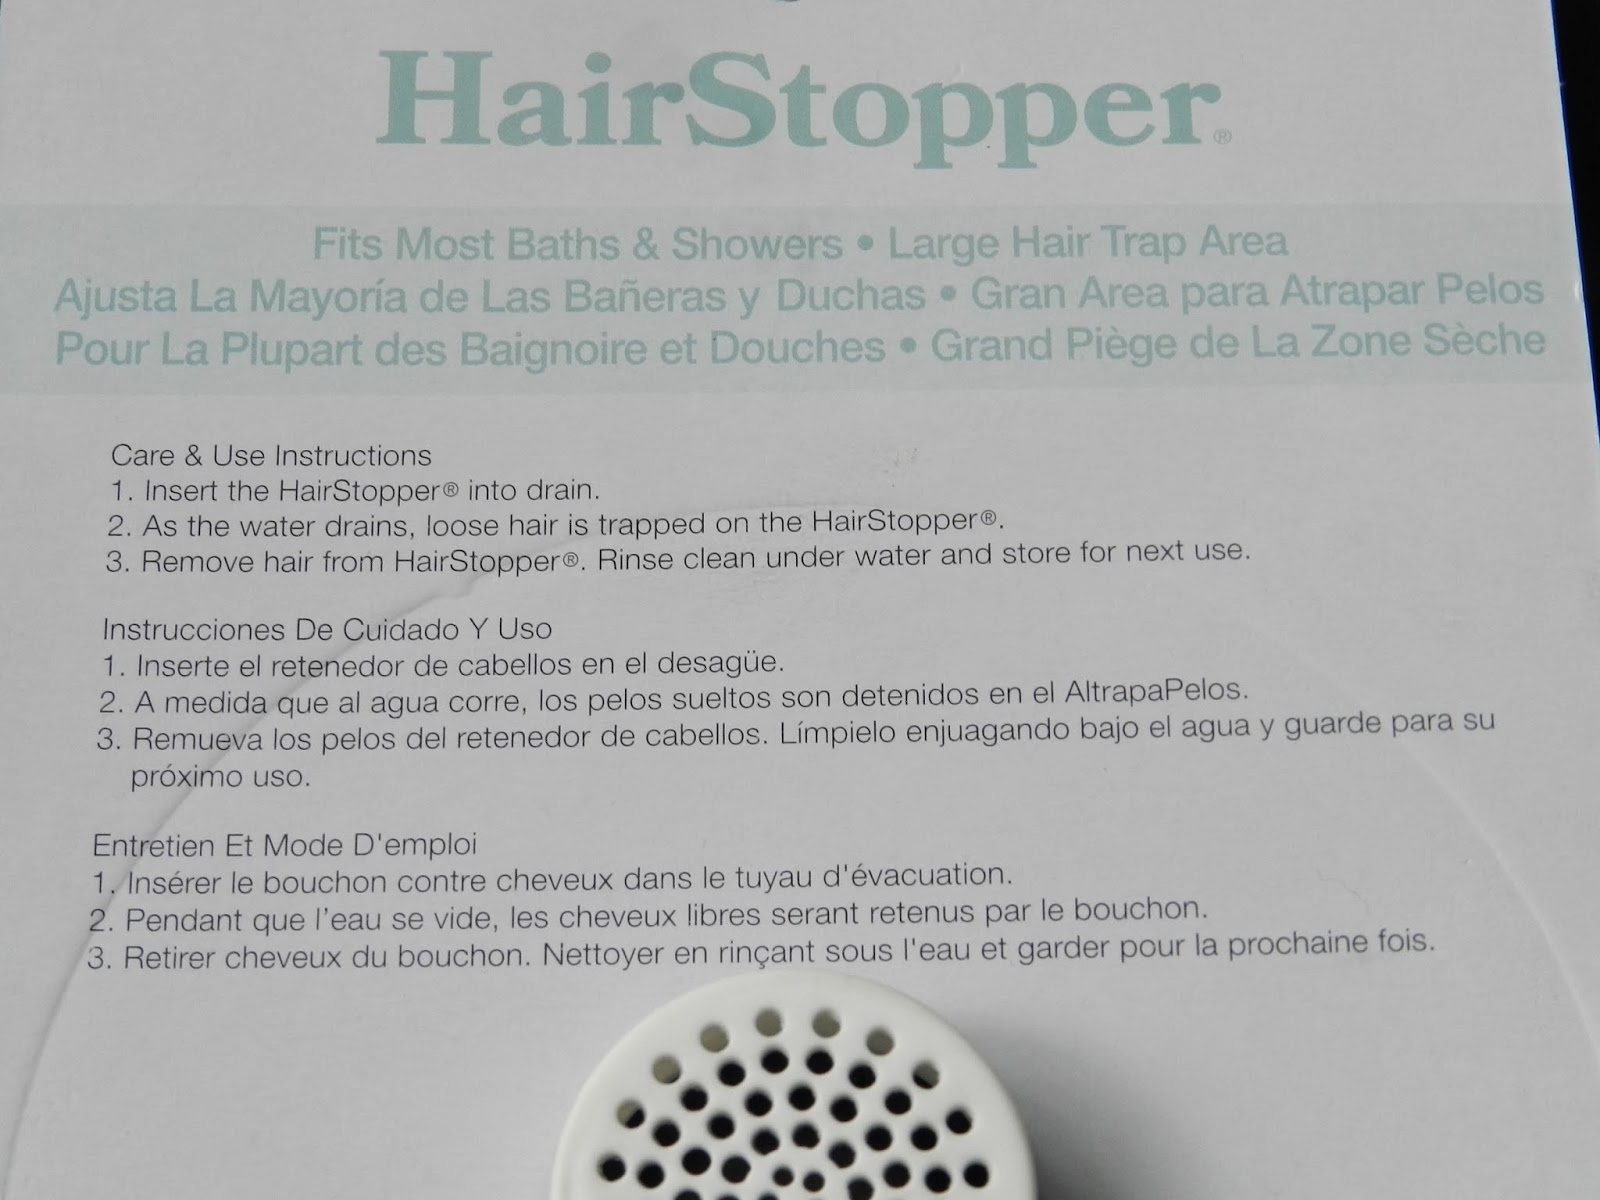 HairStopper: Lost in translation.